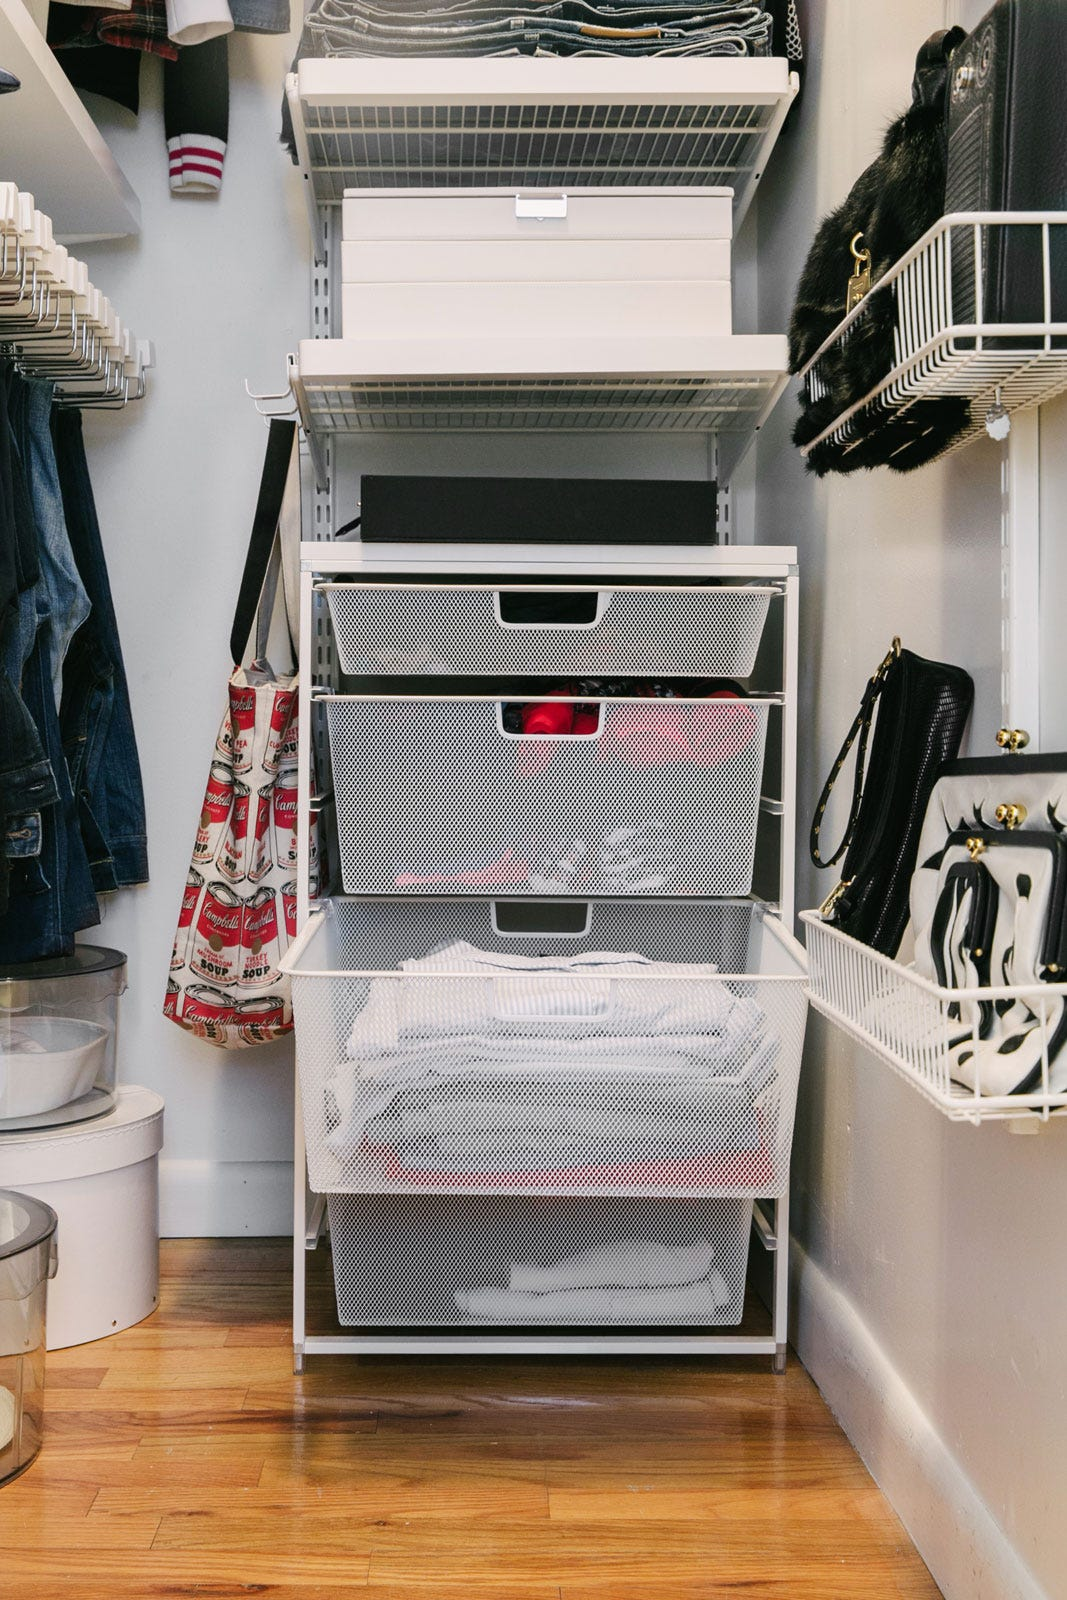 diy ideas and walk storage a wood org stunning or plus midcityeast well size white small dresser island tips of with in closet add together organization using wooden as full hanging for smart organizers spacious organizer